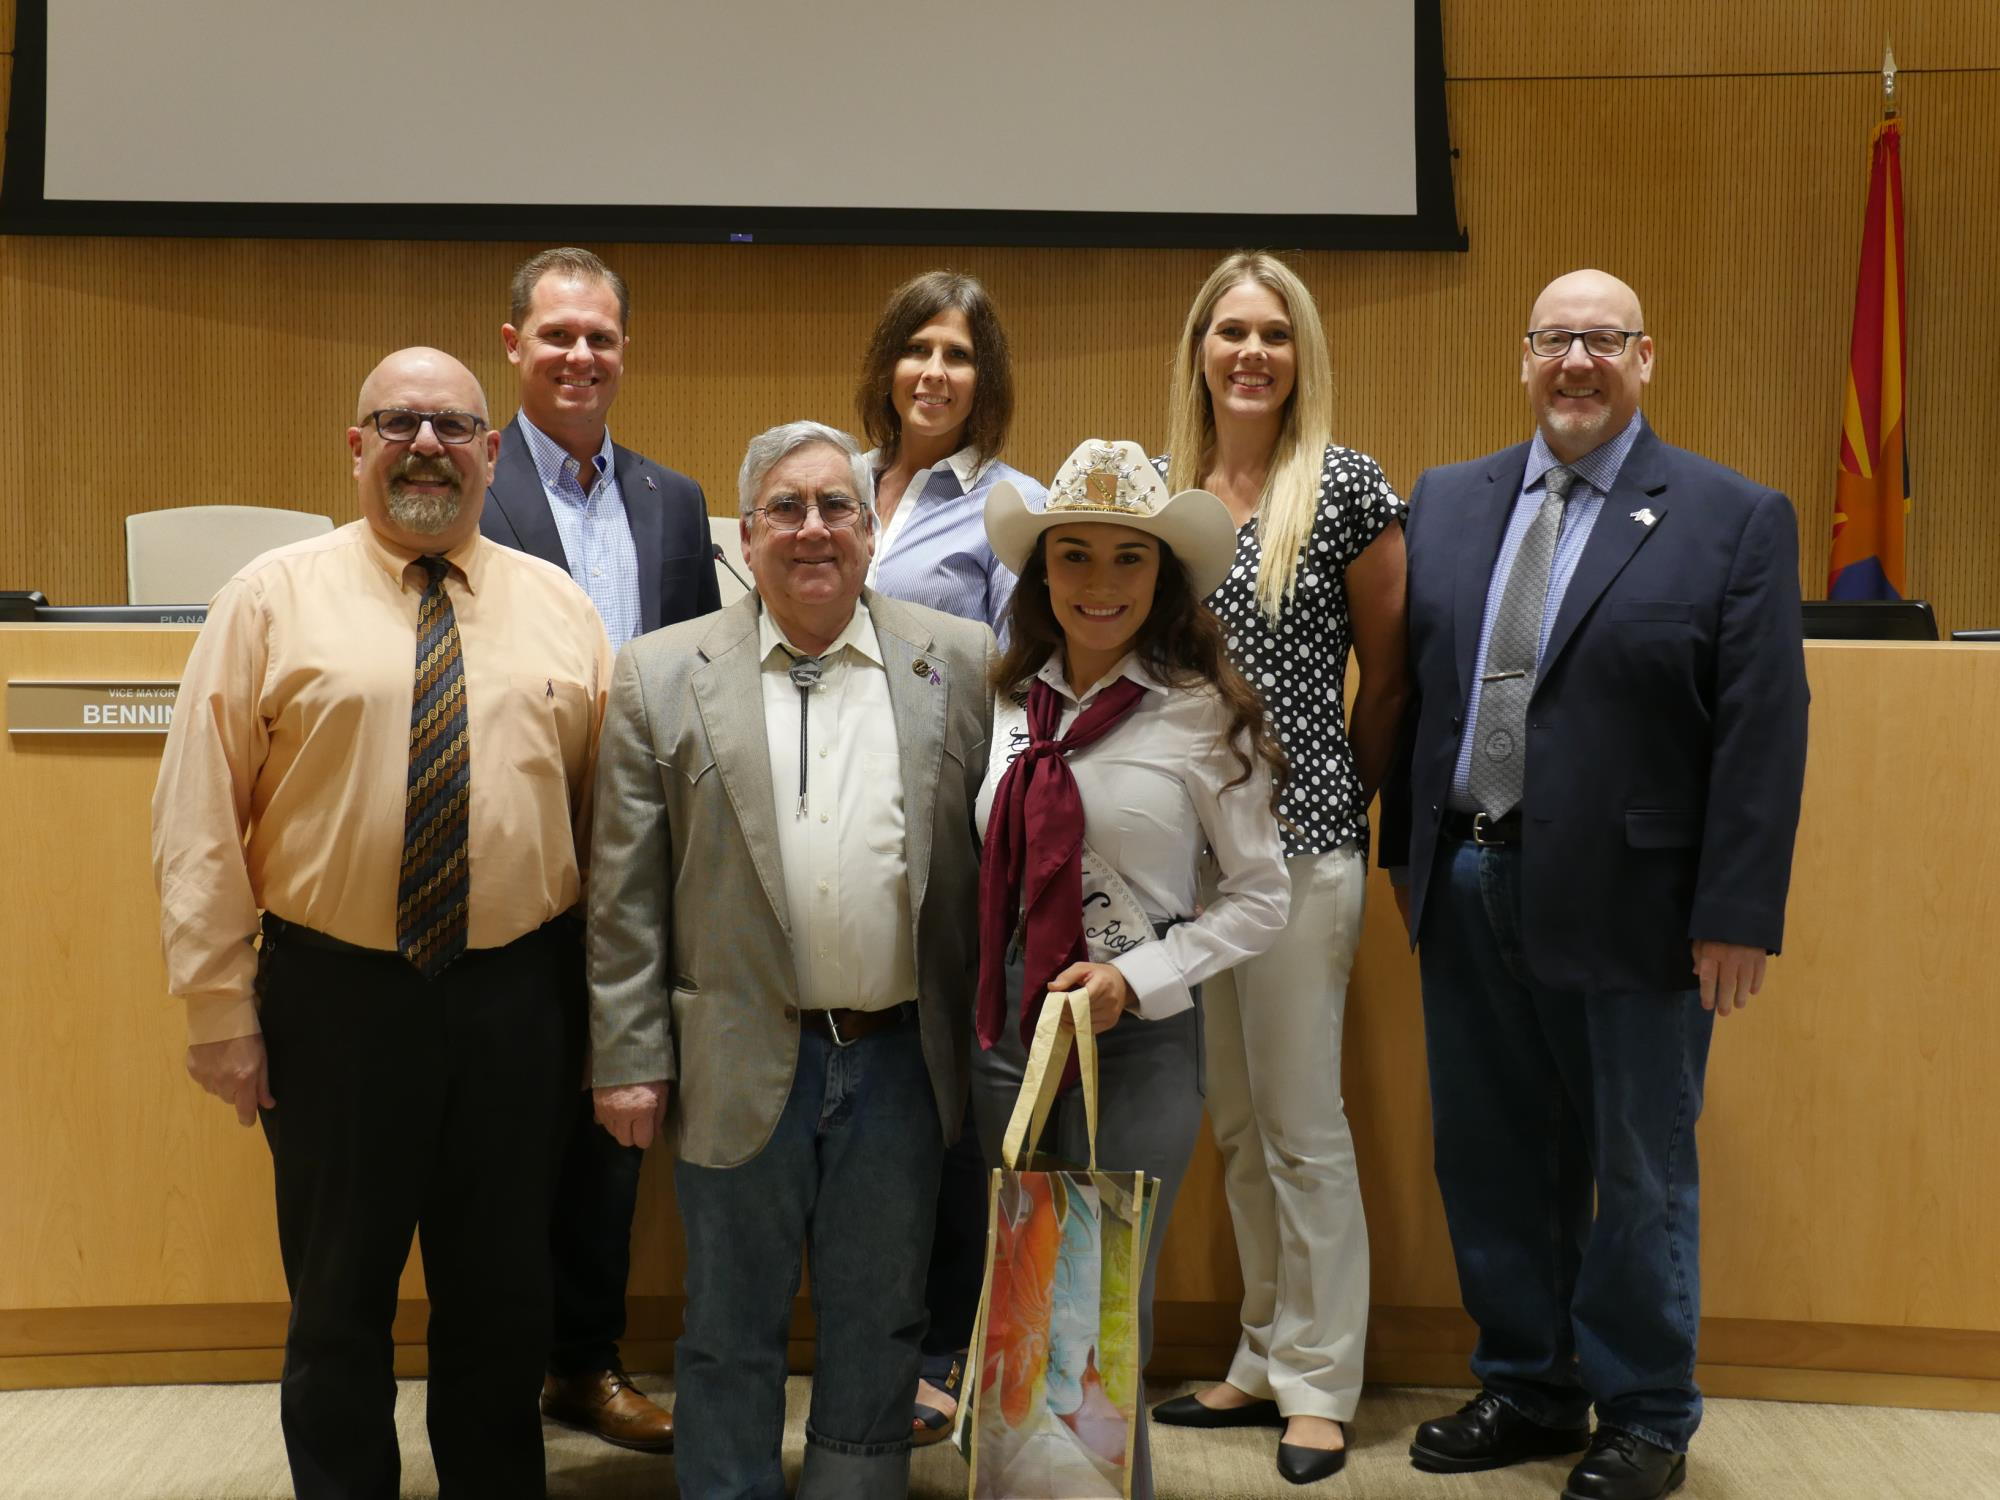 03 - Mayor Barney and the Town Council recognizing Jennie Martinez at the August 7 Twon Council Meeting